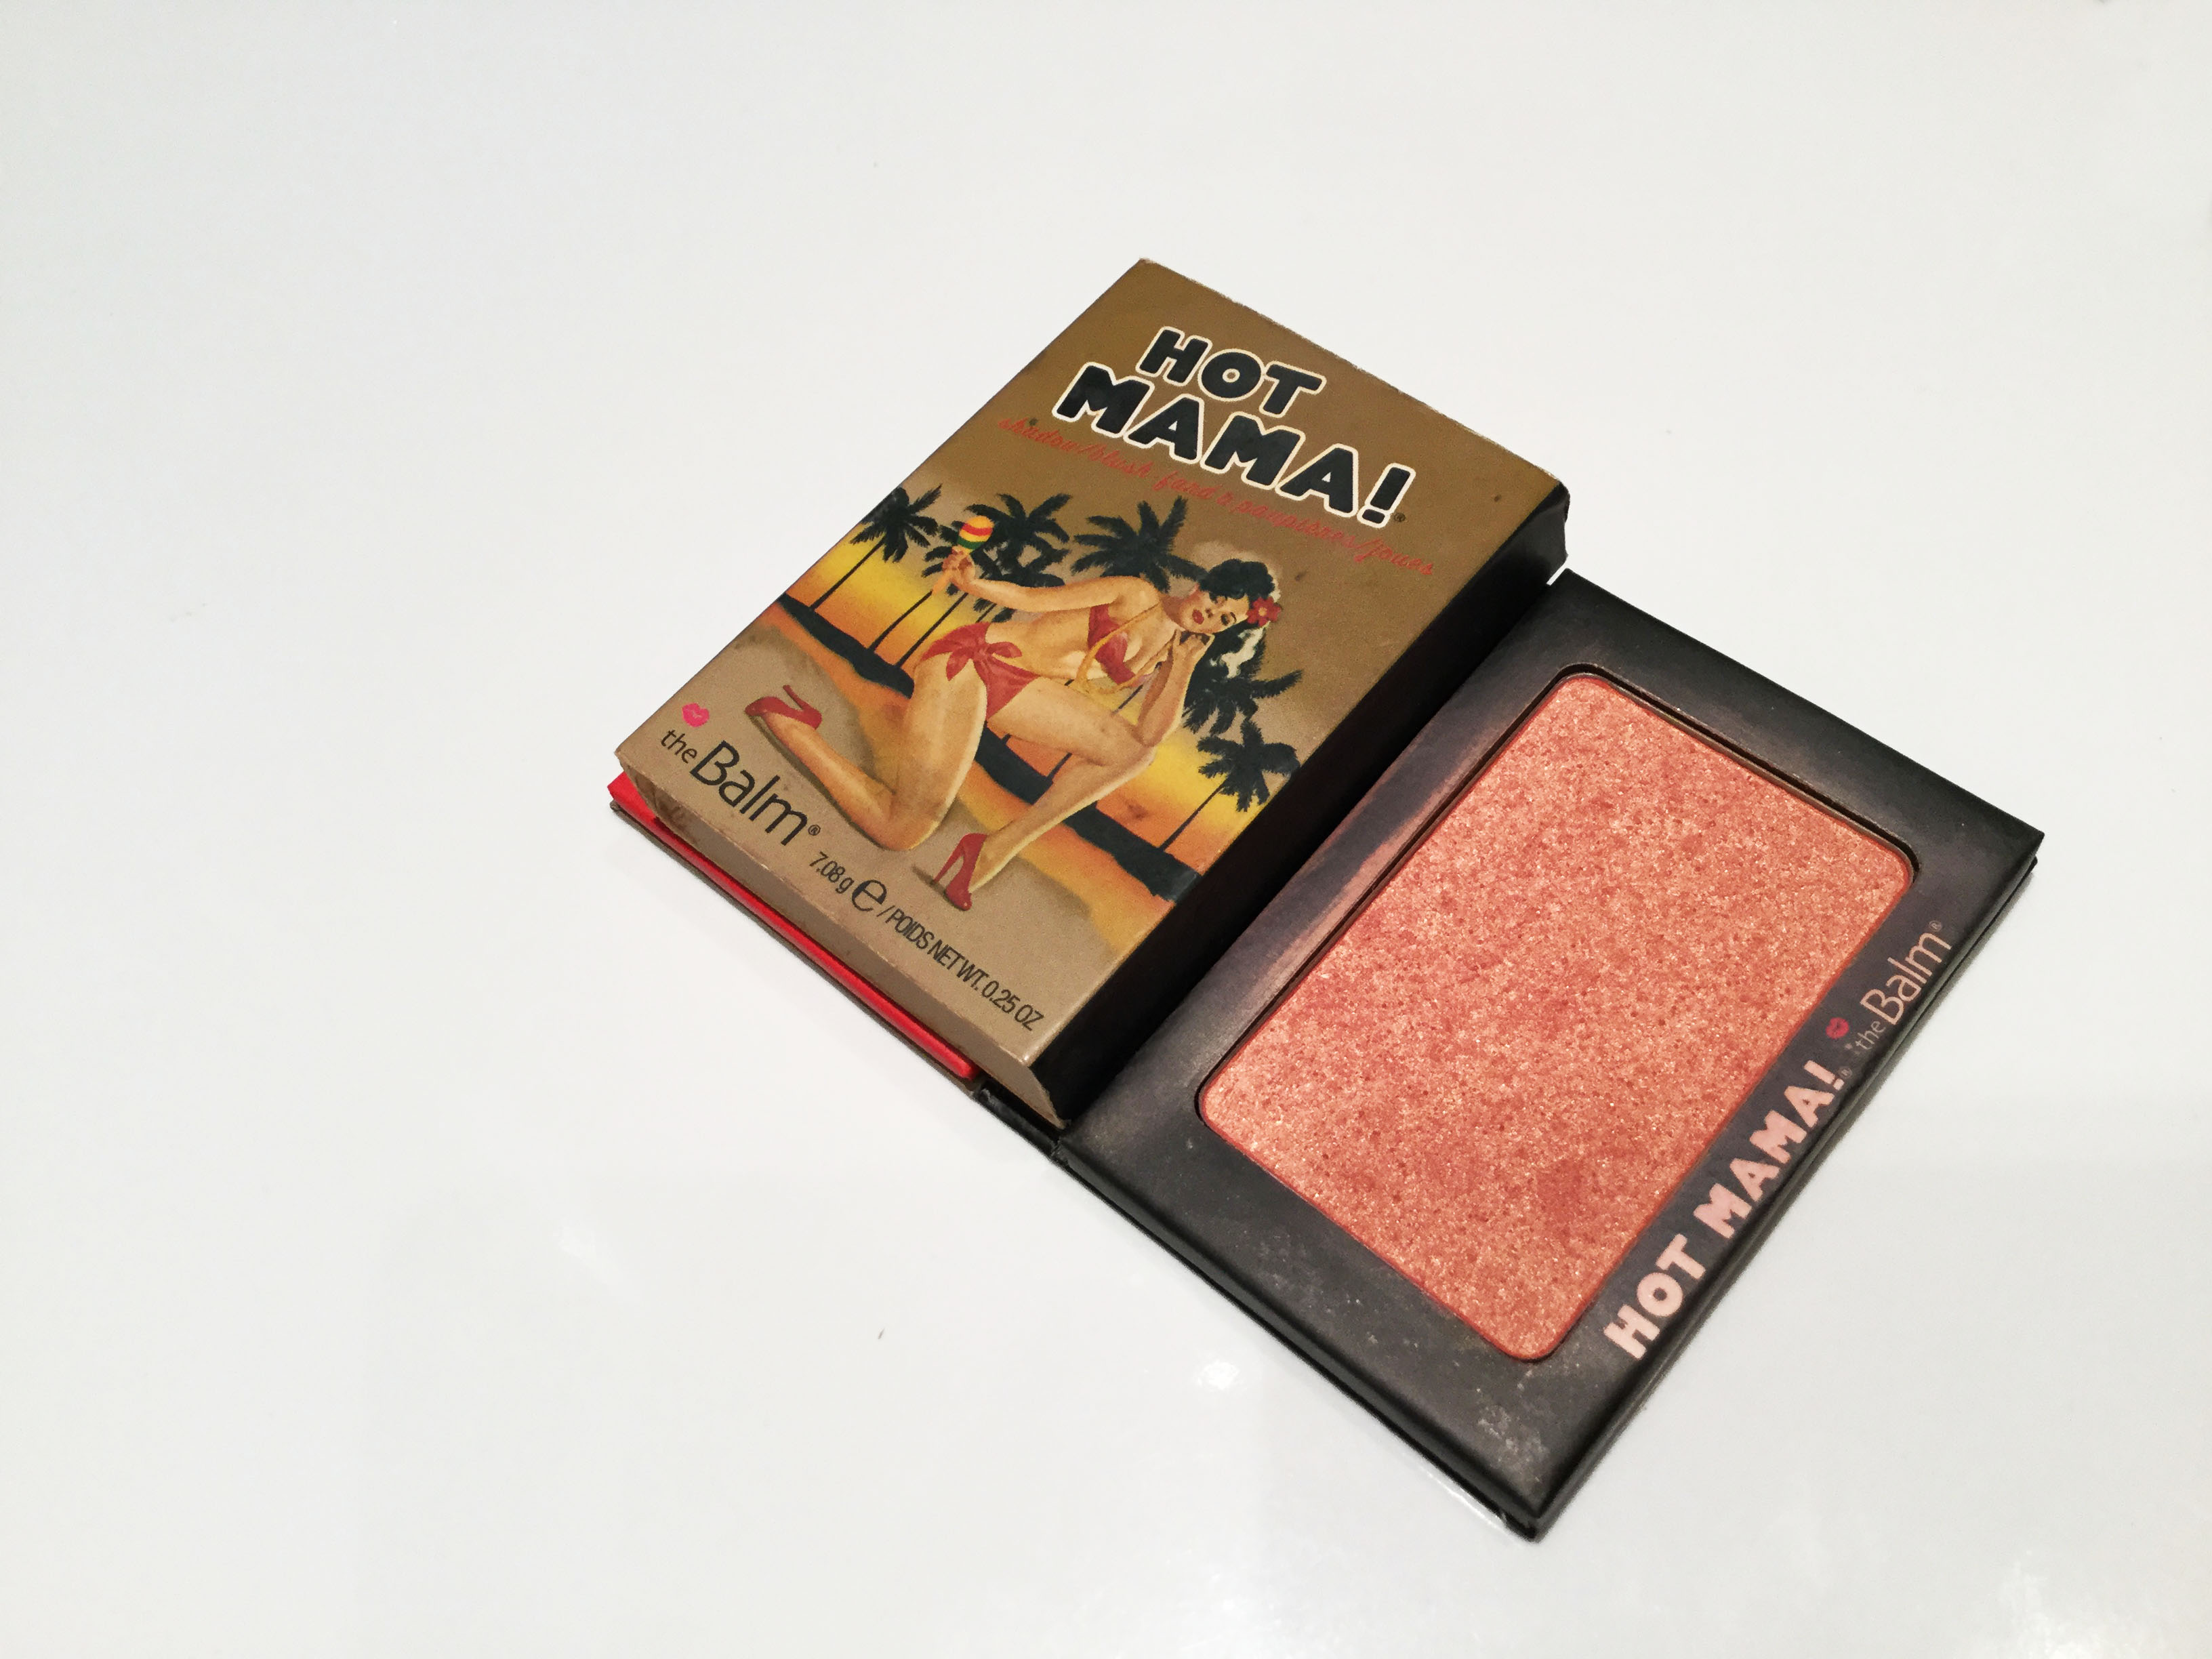 Colorete Hot Mama de The Balm.